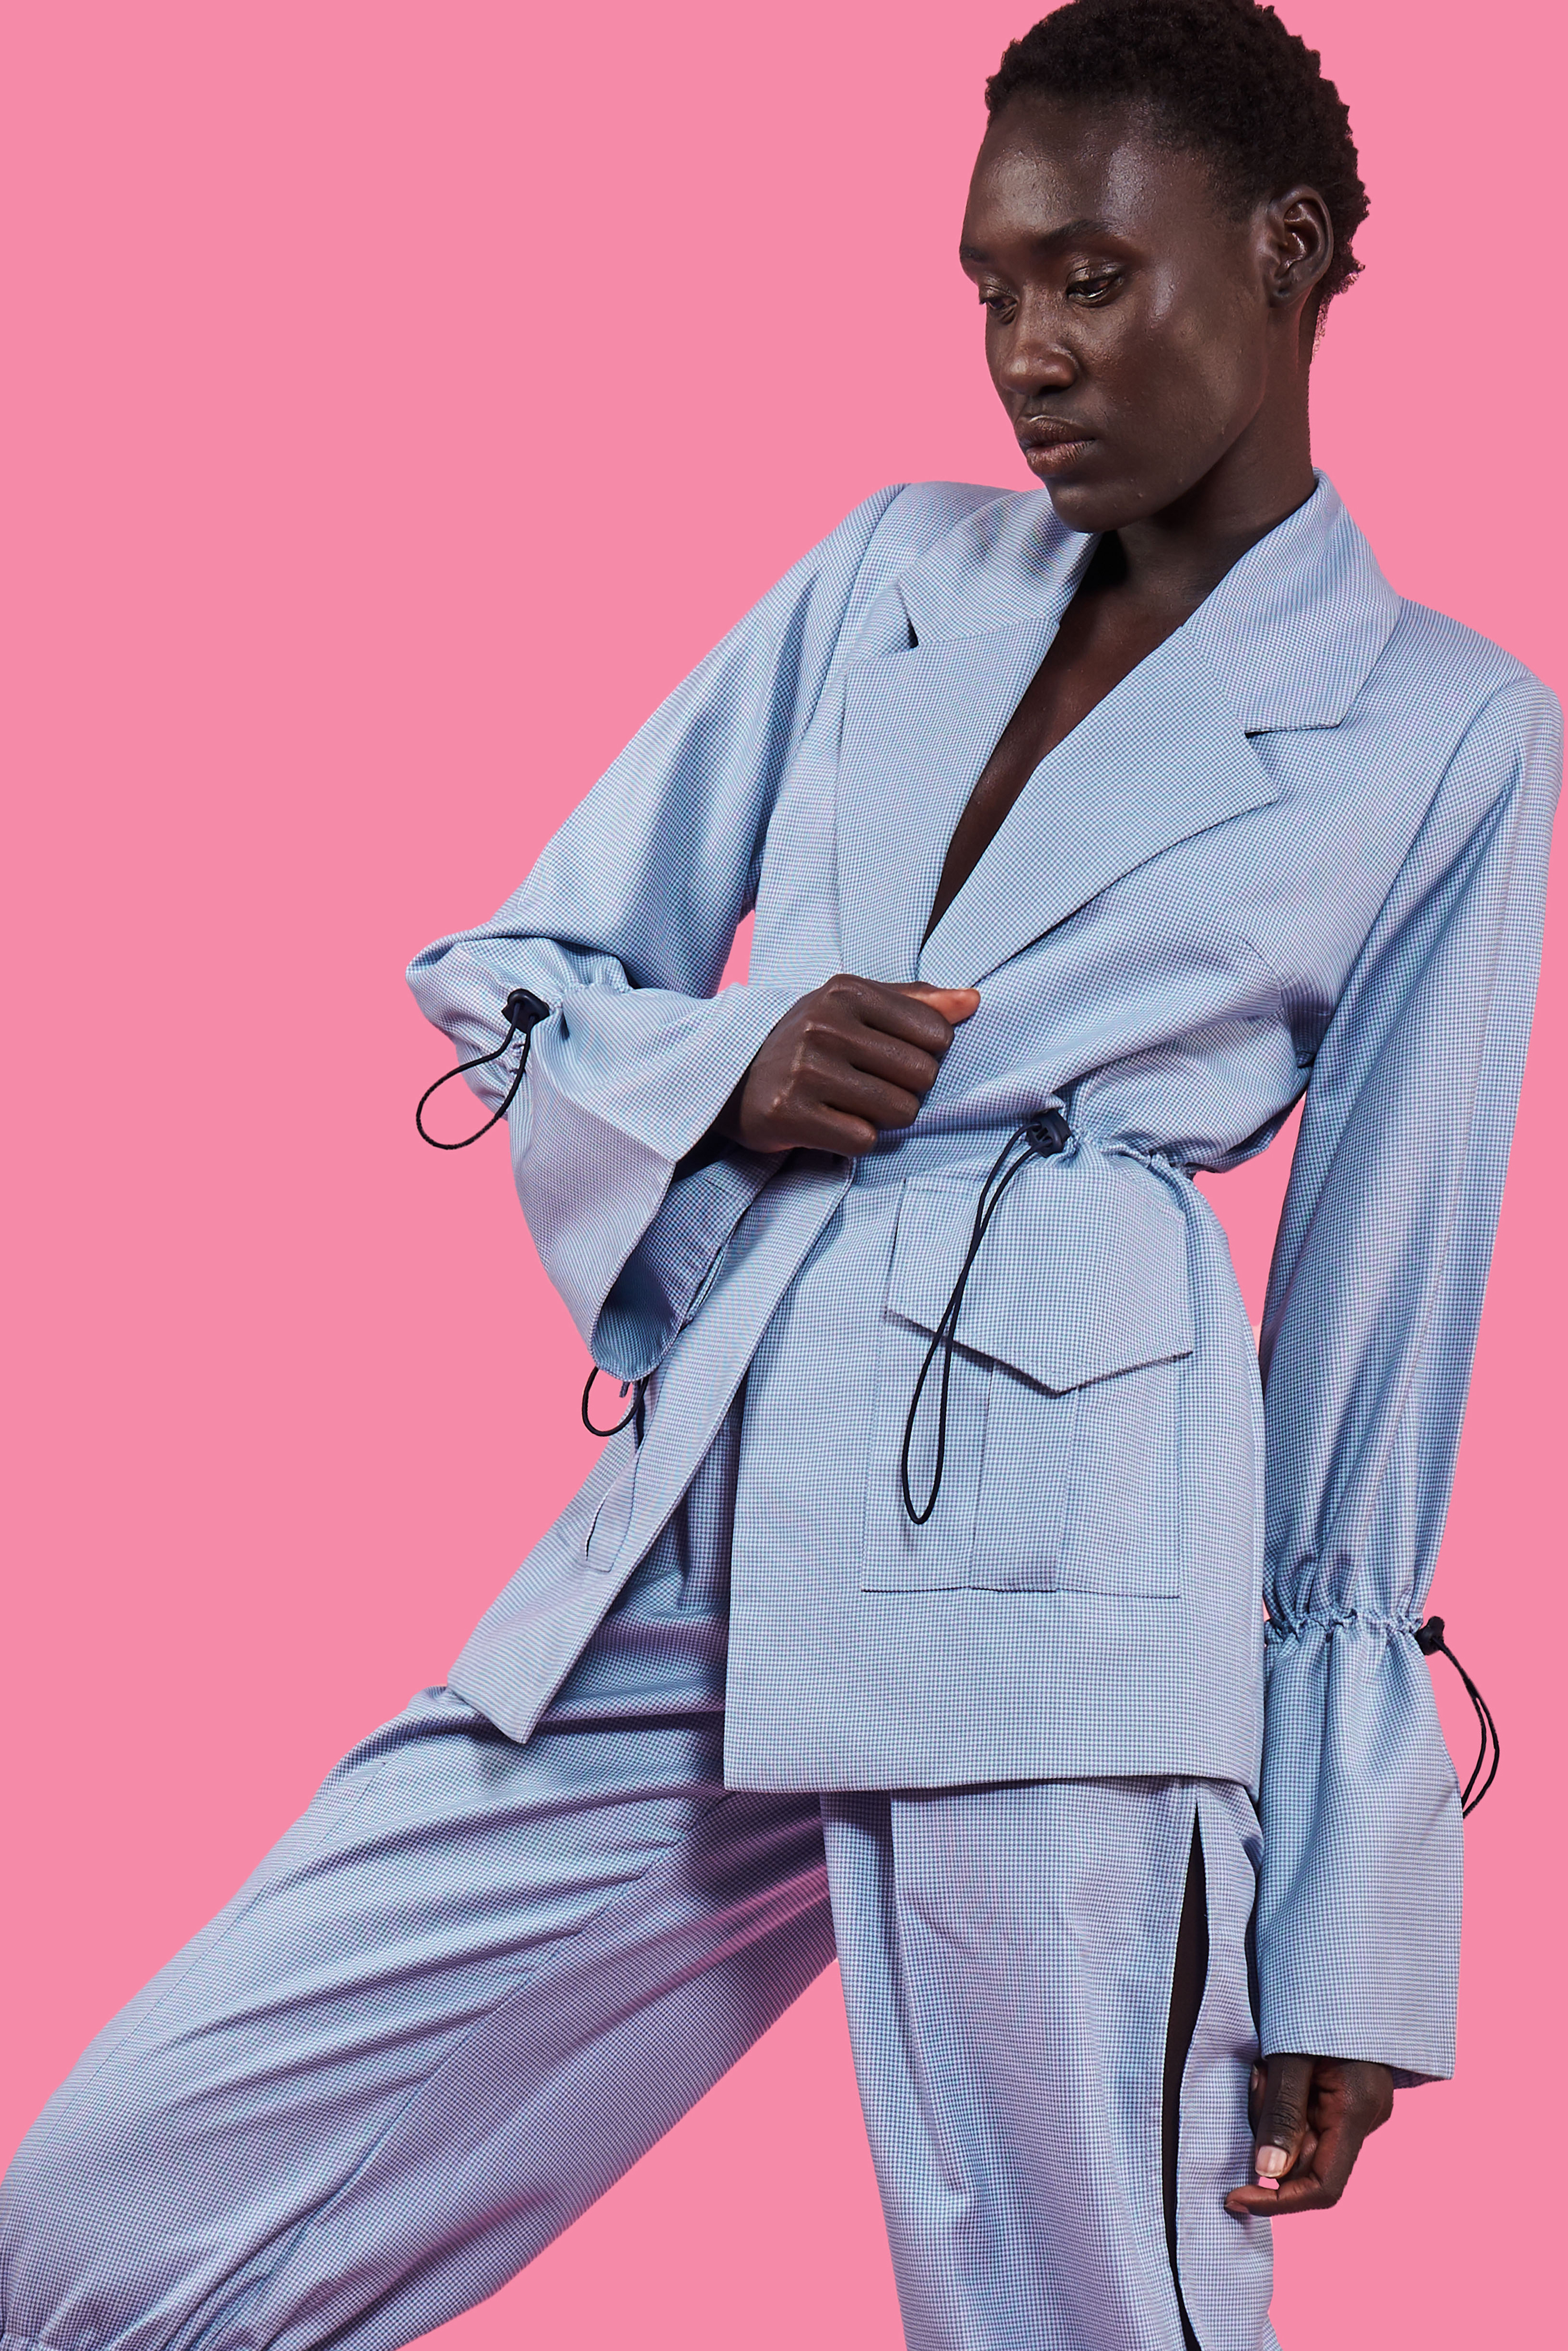 LVMH Prize 2019 Goes to Thebe Magugu